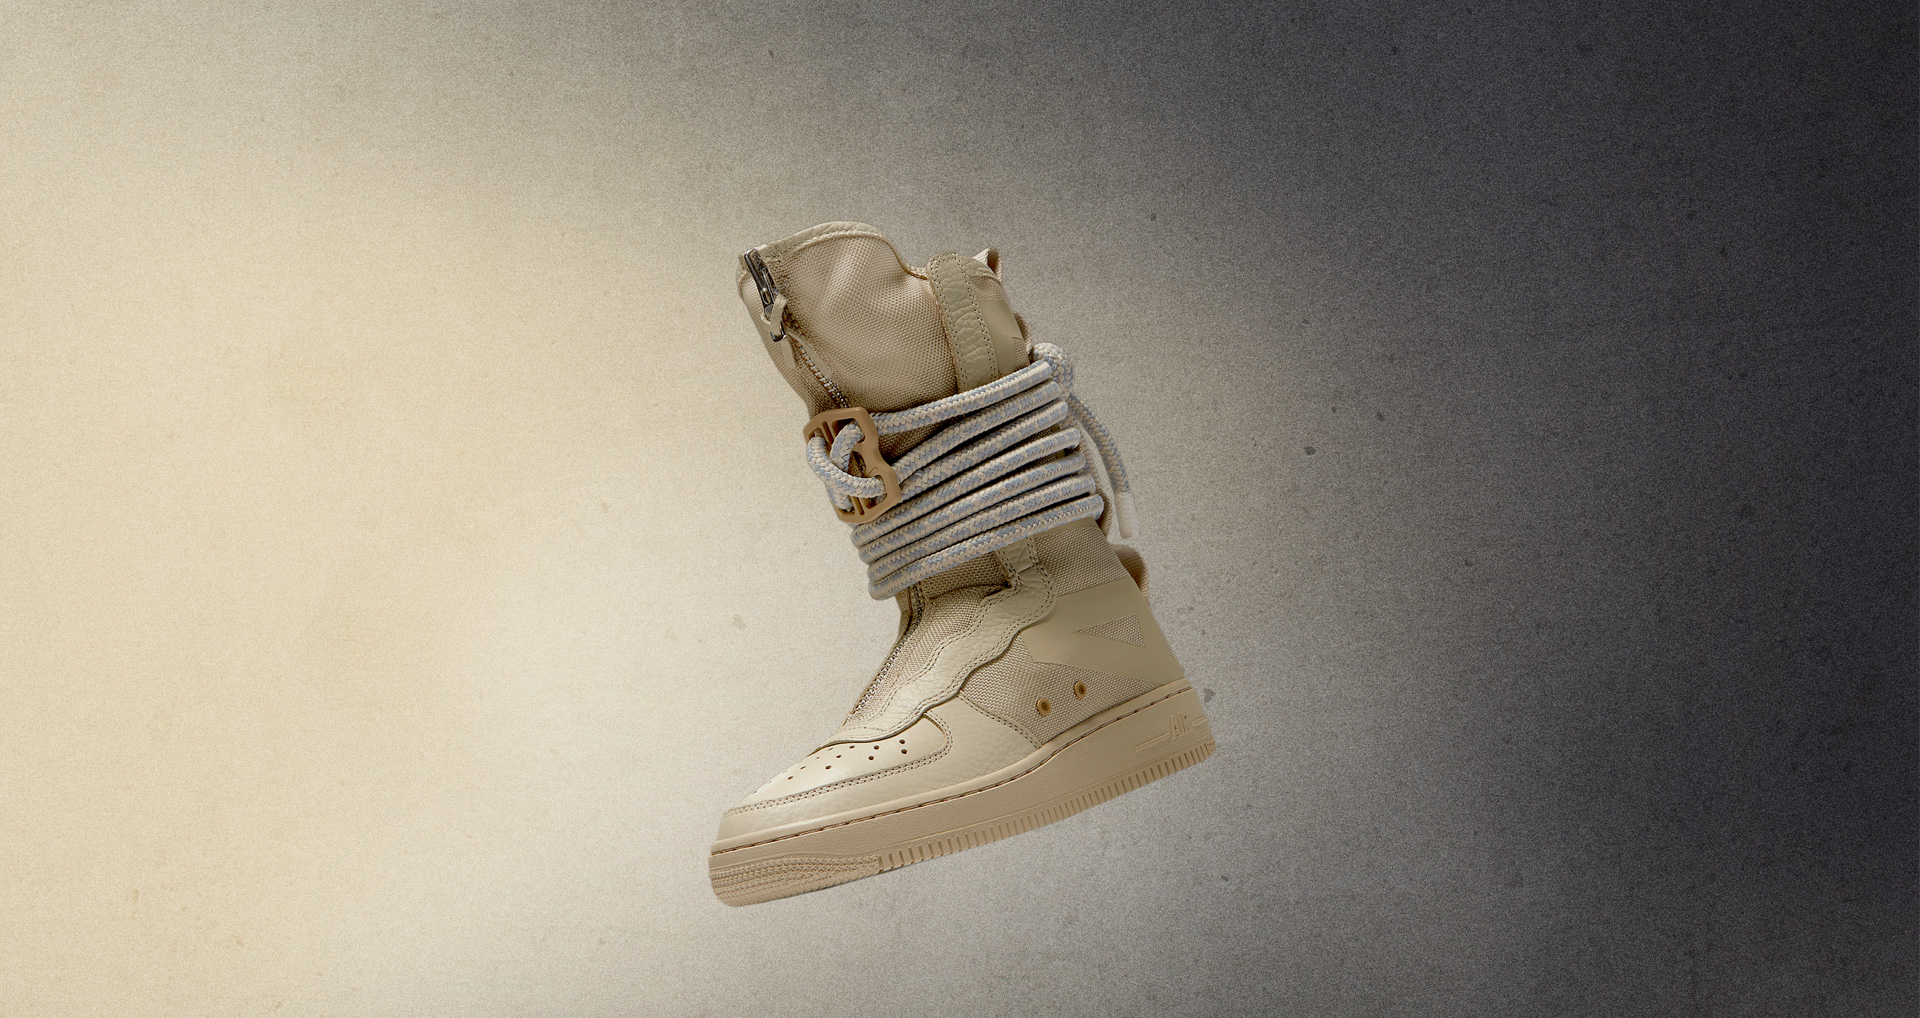 nike-sf-af1-special-field-air-force-1-high-rattan-aa1128-200-1